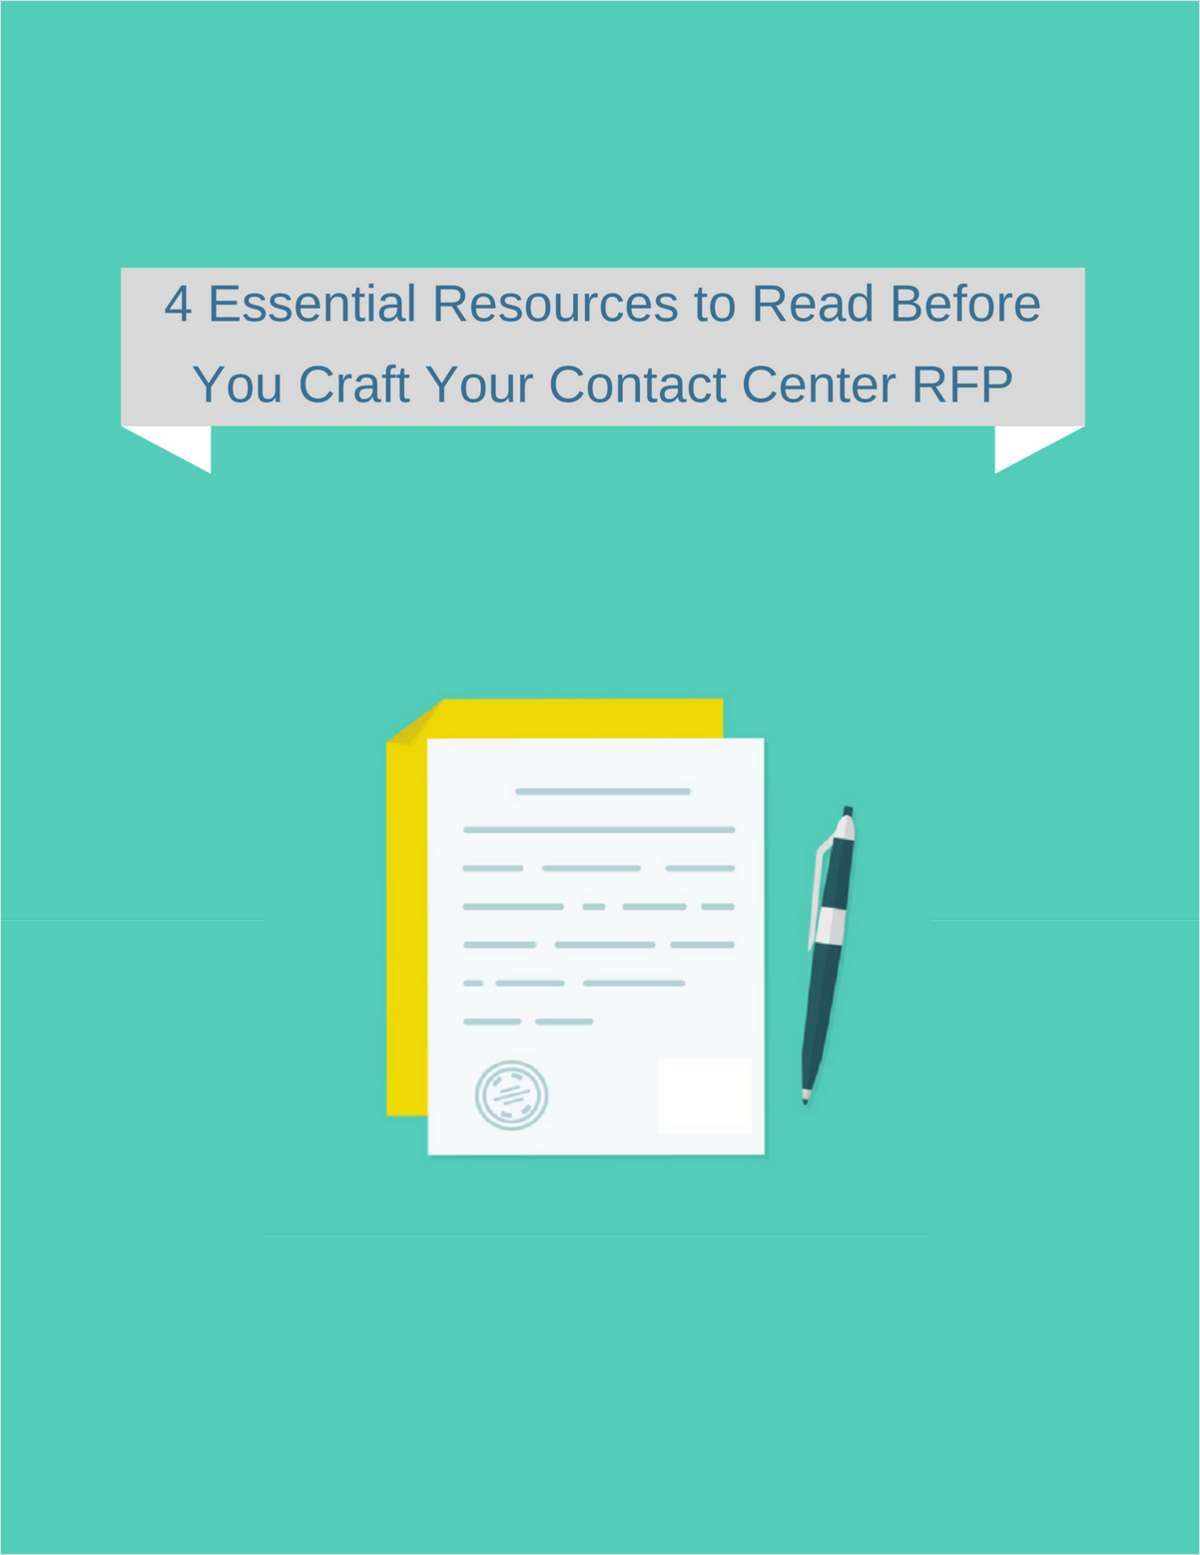 4 Essential Resources to Read Before You Craft Your Contact Center RFP